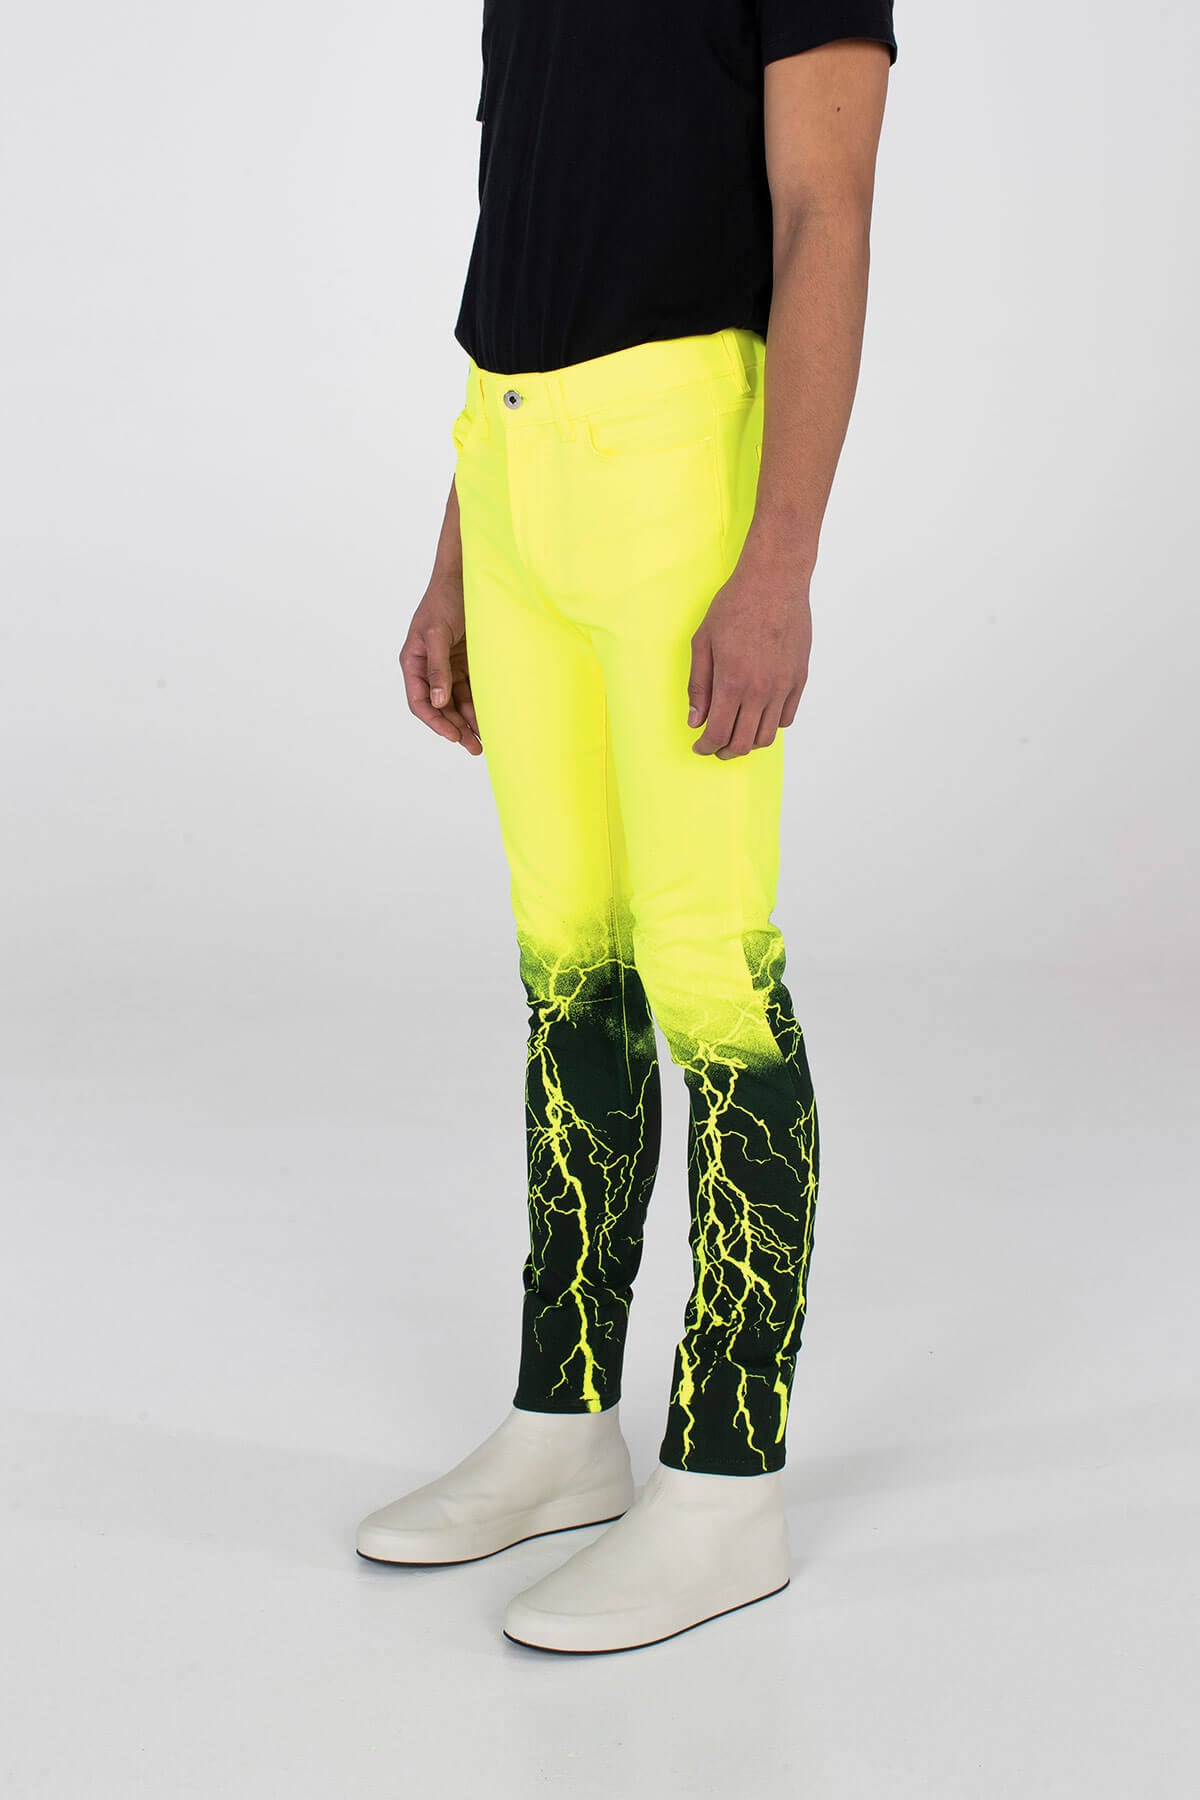 Crixus Jeans – Lightning Neon Yellow - BOTTOM - MJB